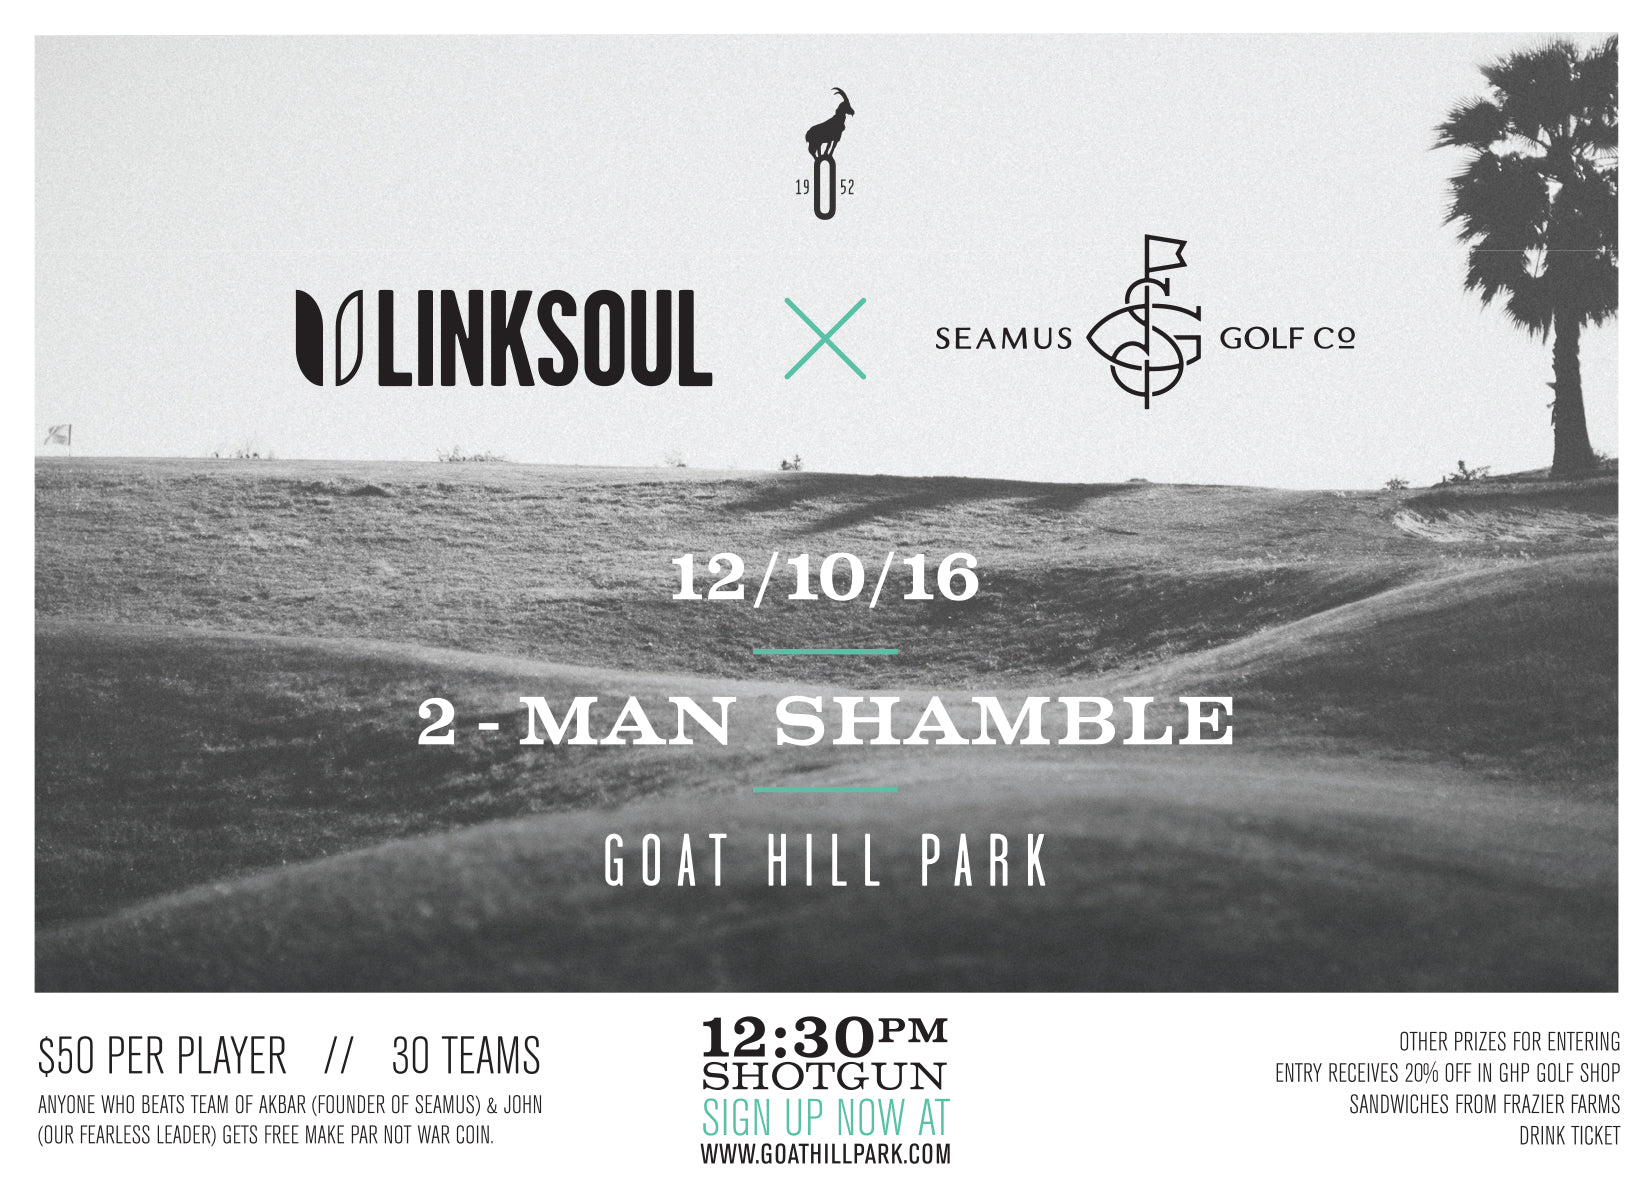 LINKSOUL X SEAMUS 2-MAN AT GOAT HILL PARK :: SHAMBLE